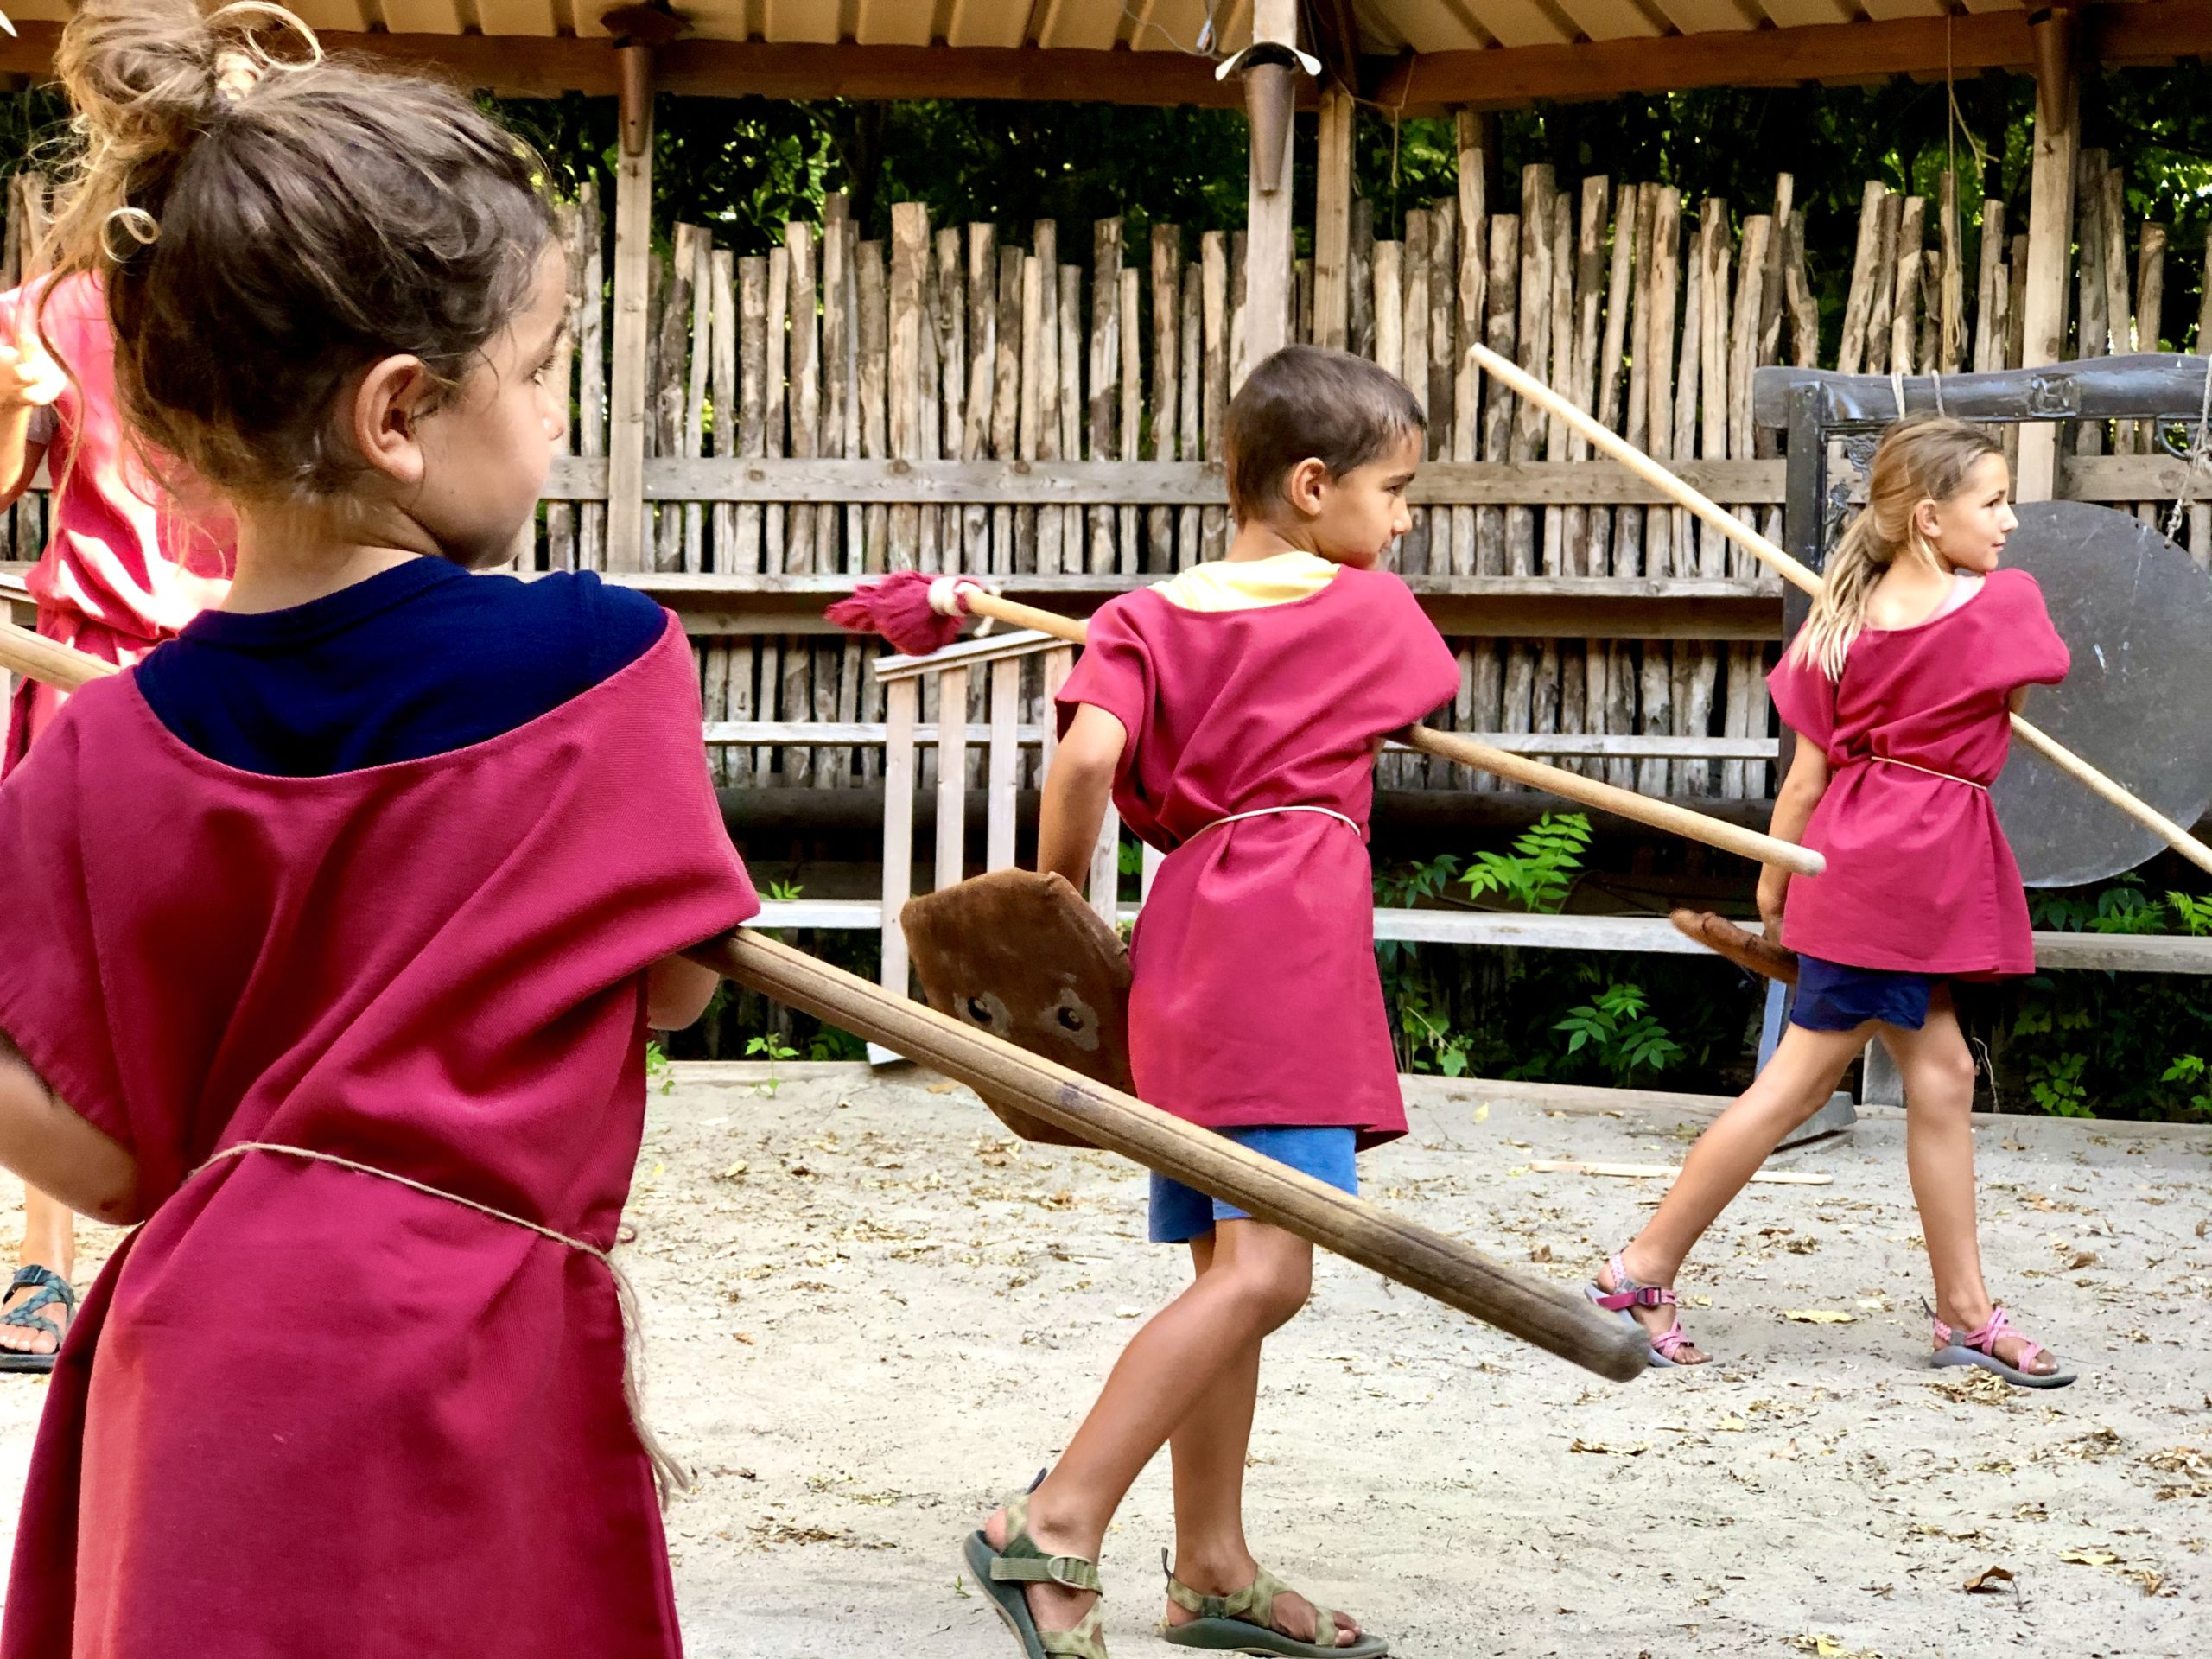 Gladiator School In Rome & Colosseum: A Special Tour With Laura And Family